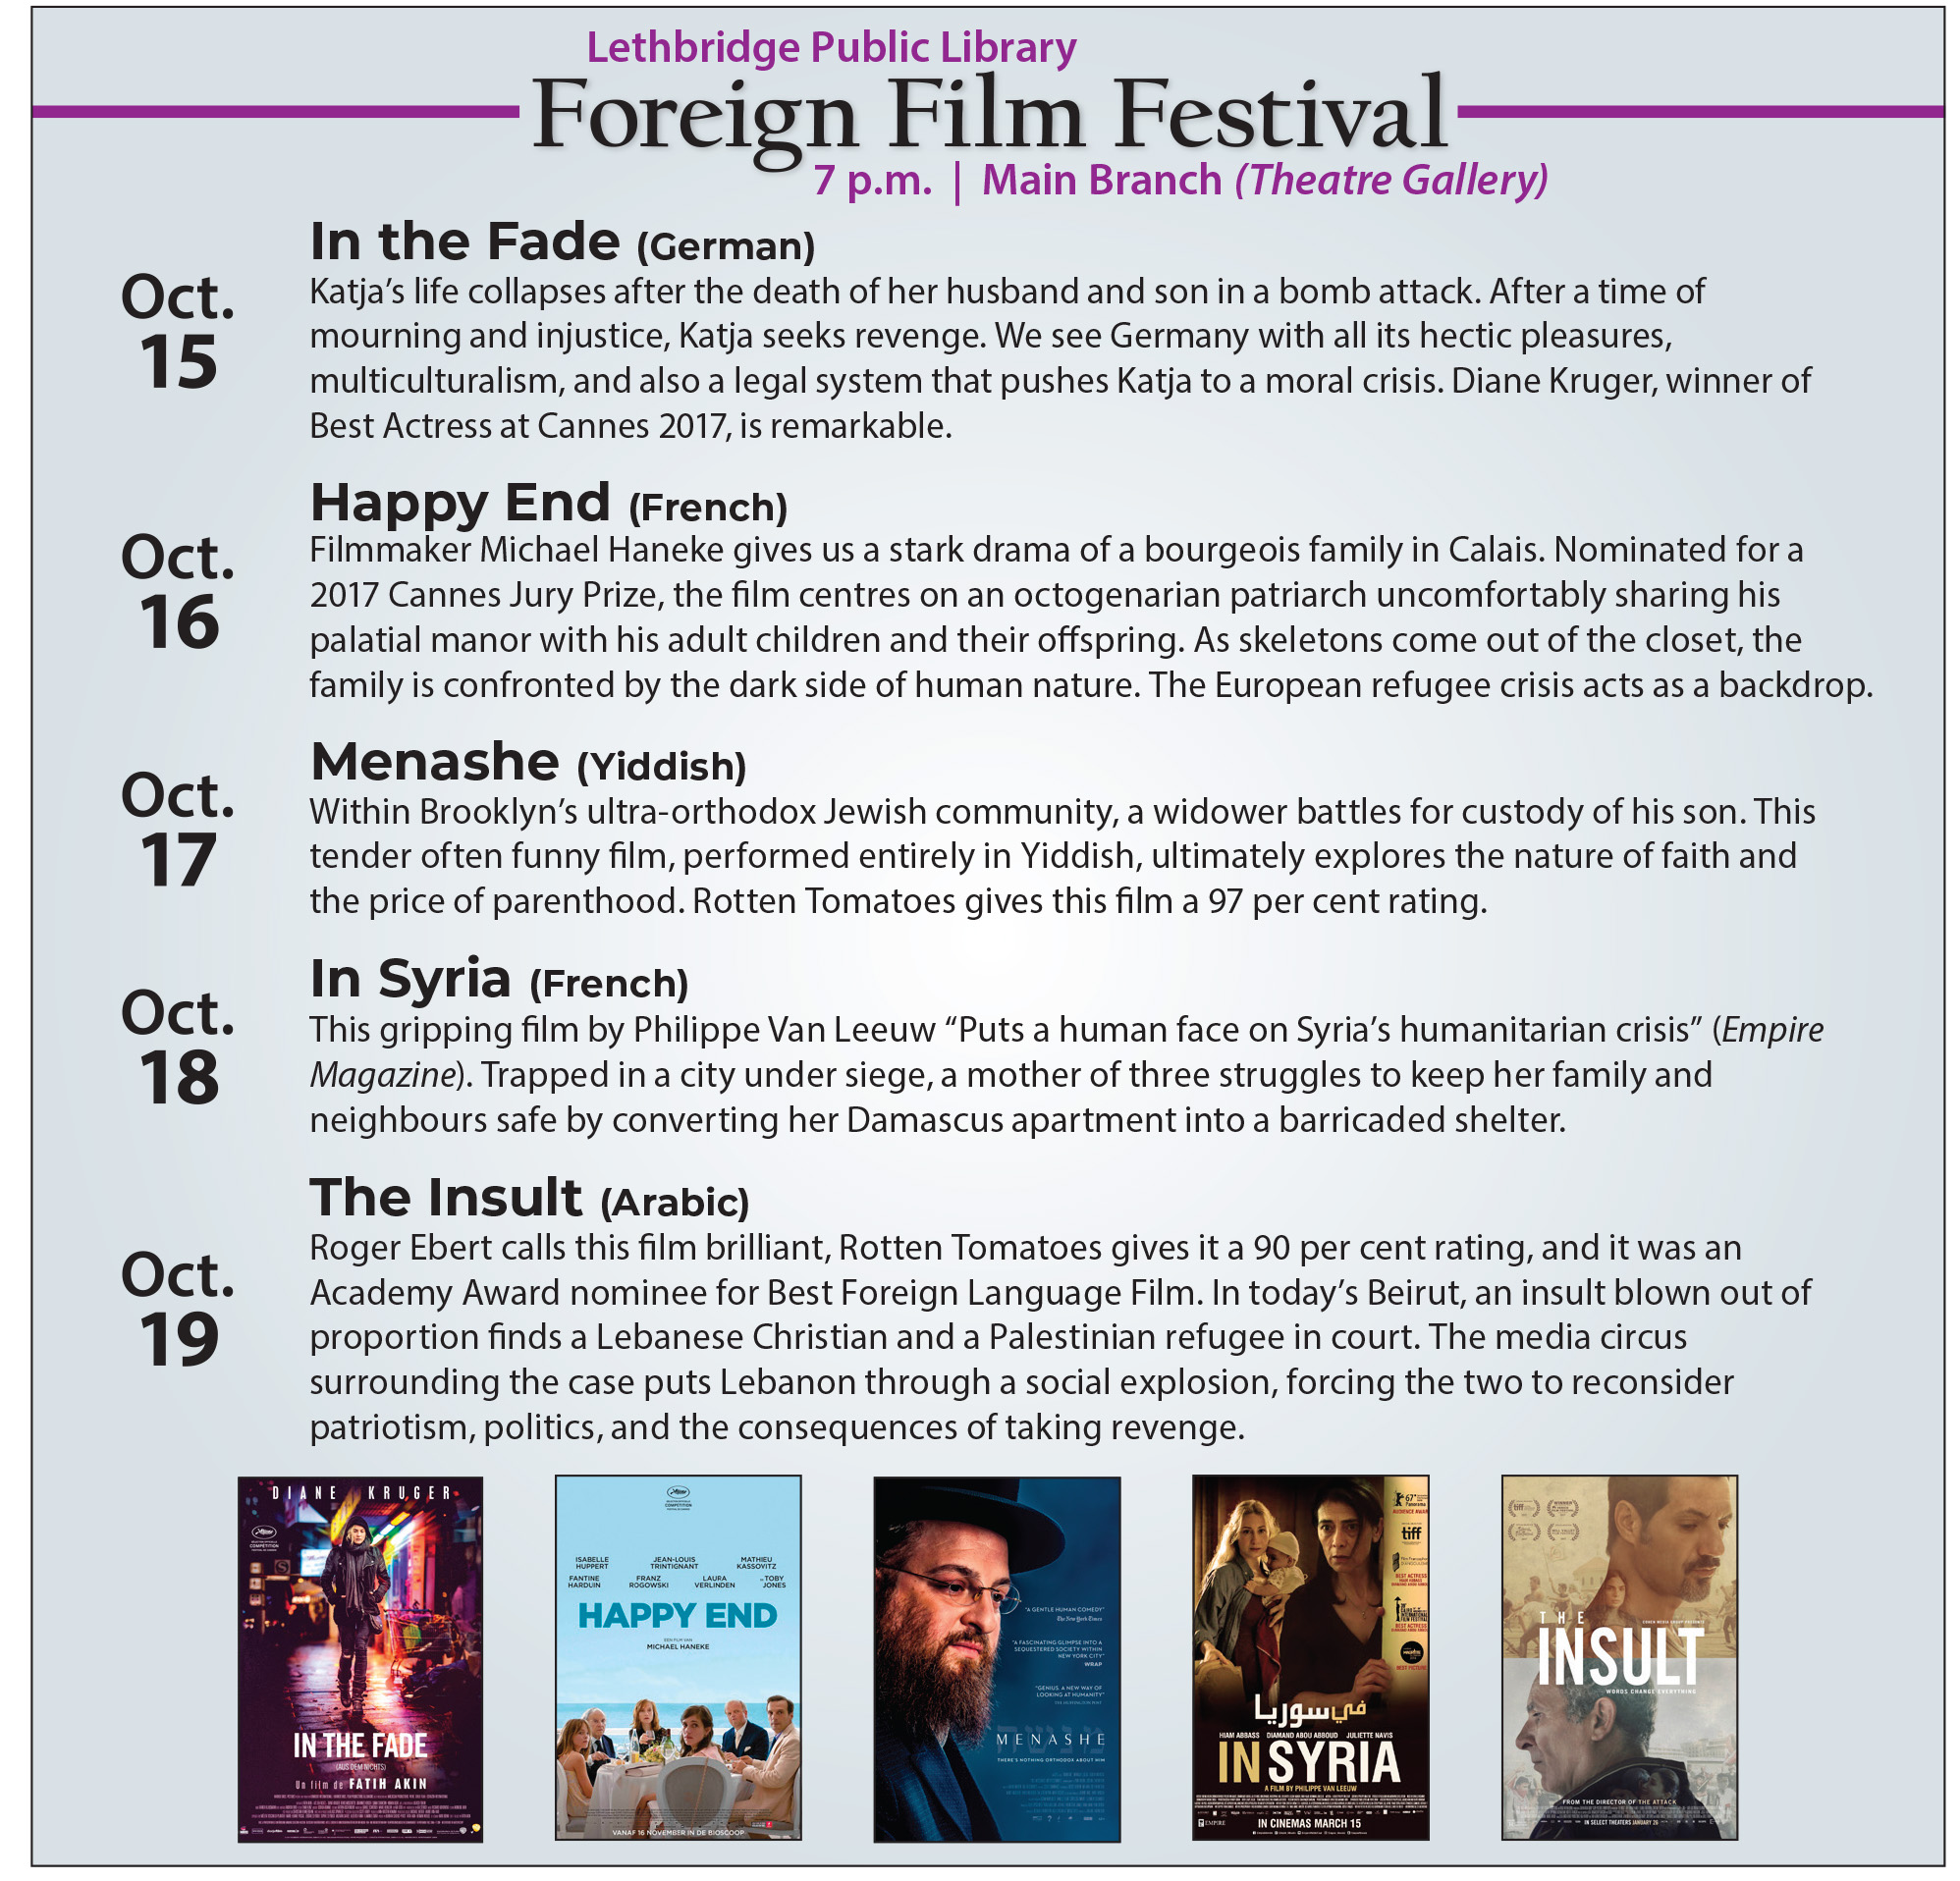 FOREIGN FILM FESTIVAL | Lethbridge Public Library